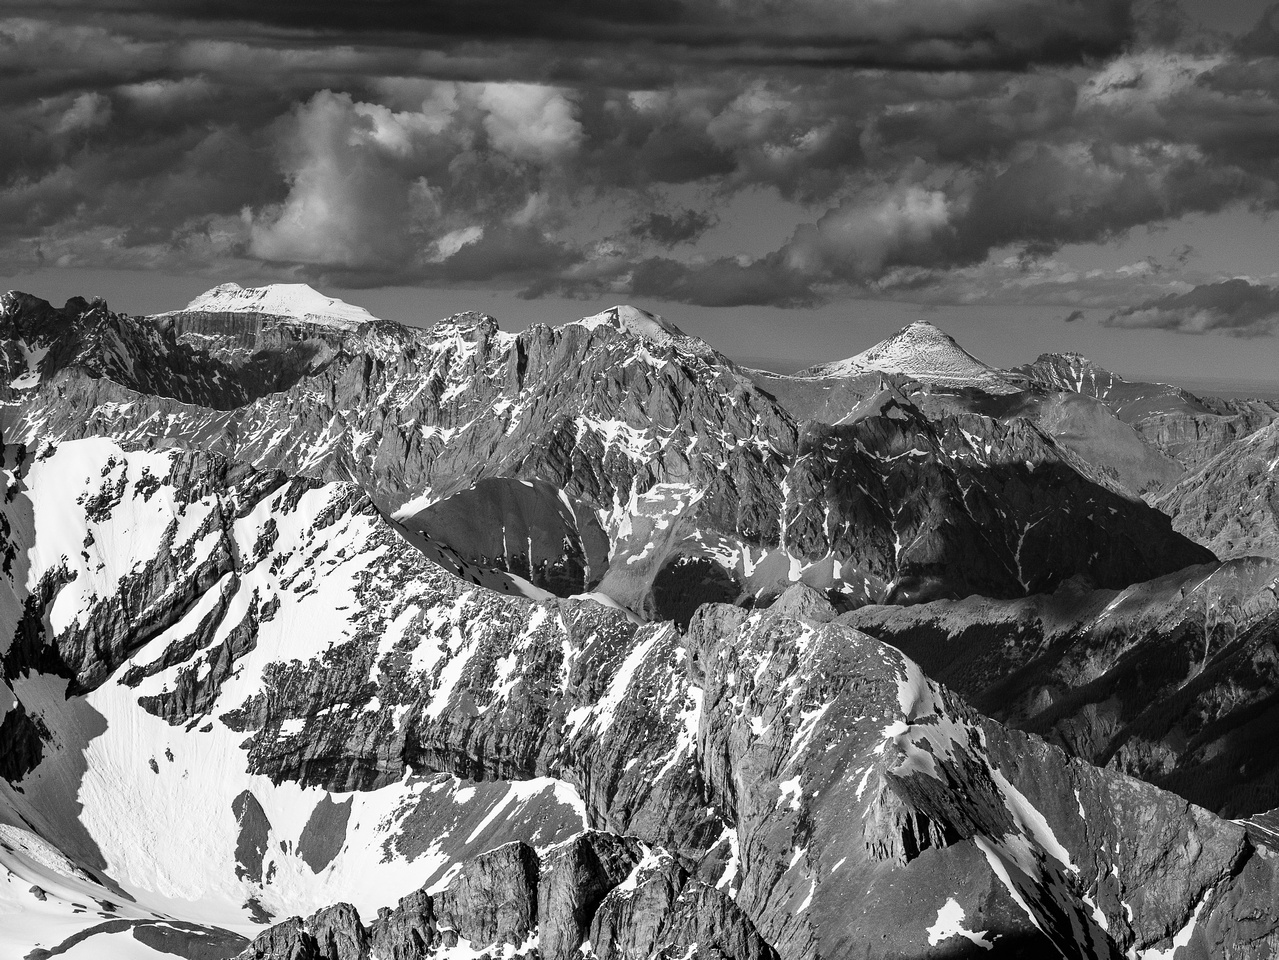 Part of the Banded Peak traverse with Cornwall, Outlaw and Banded from L to R in the distance rising over the Opal Range.